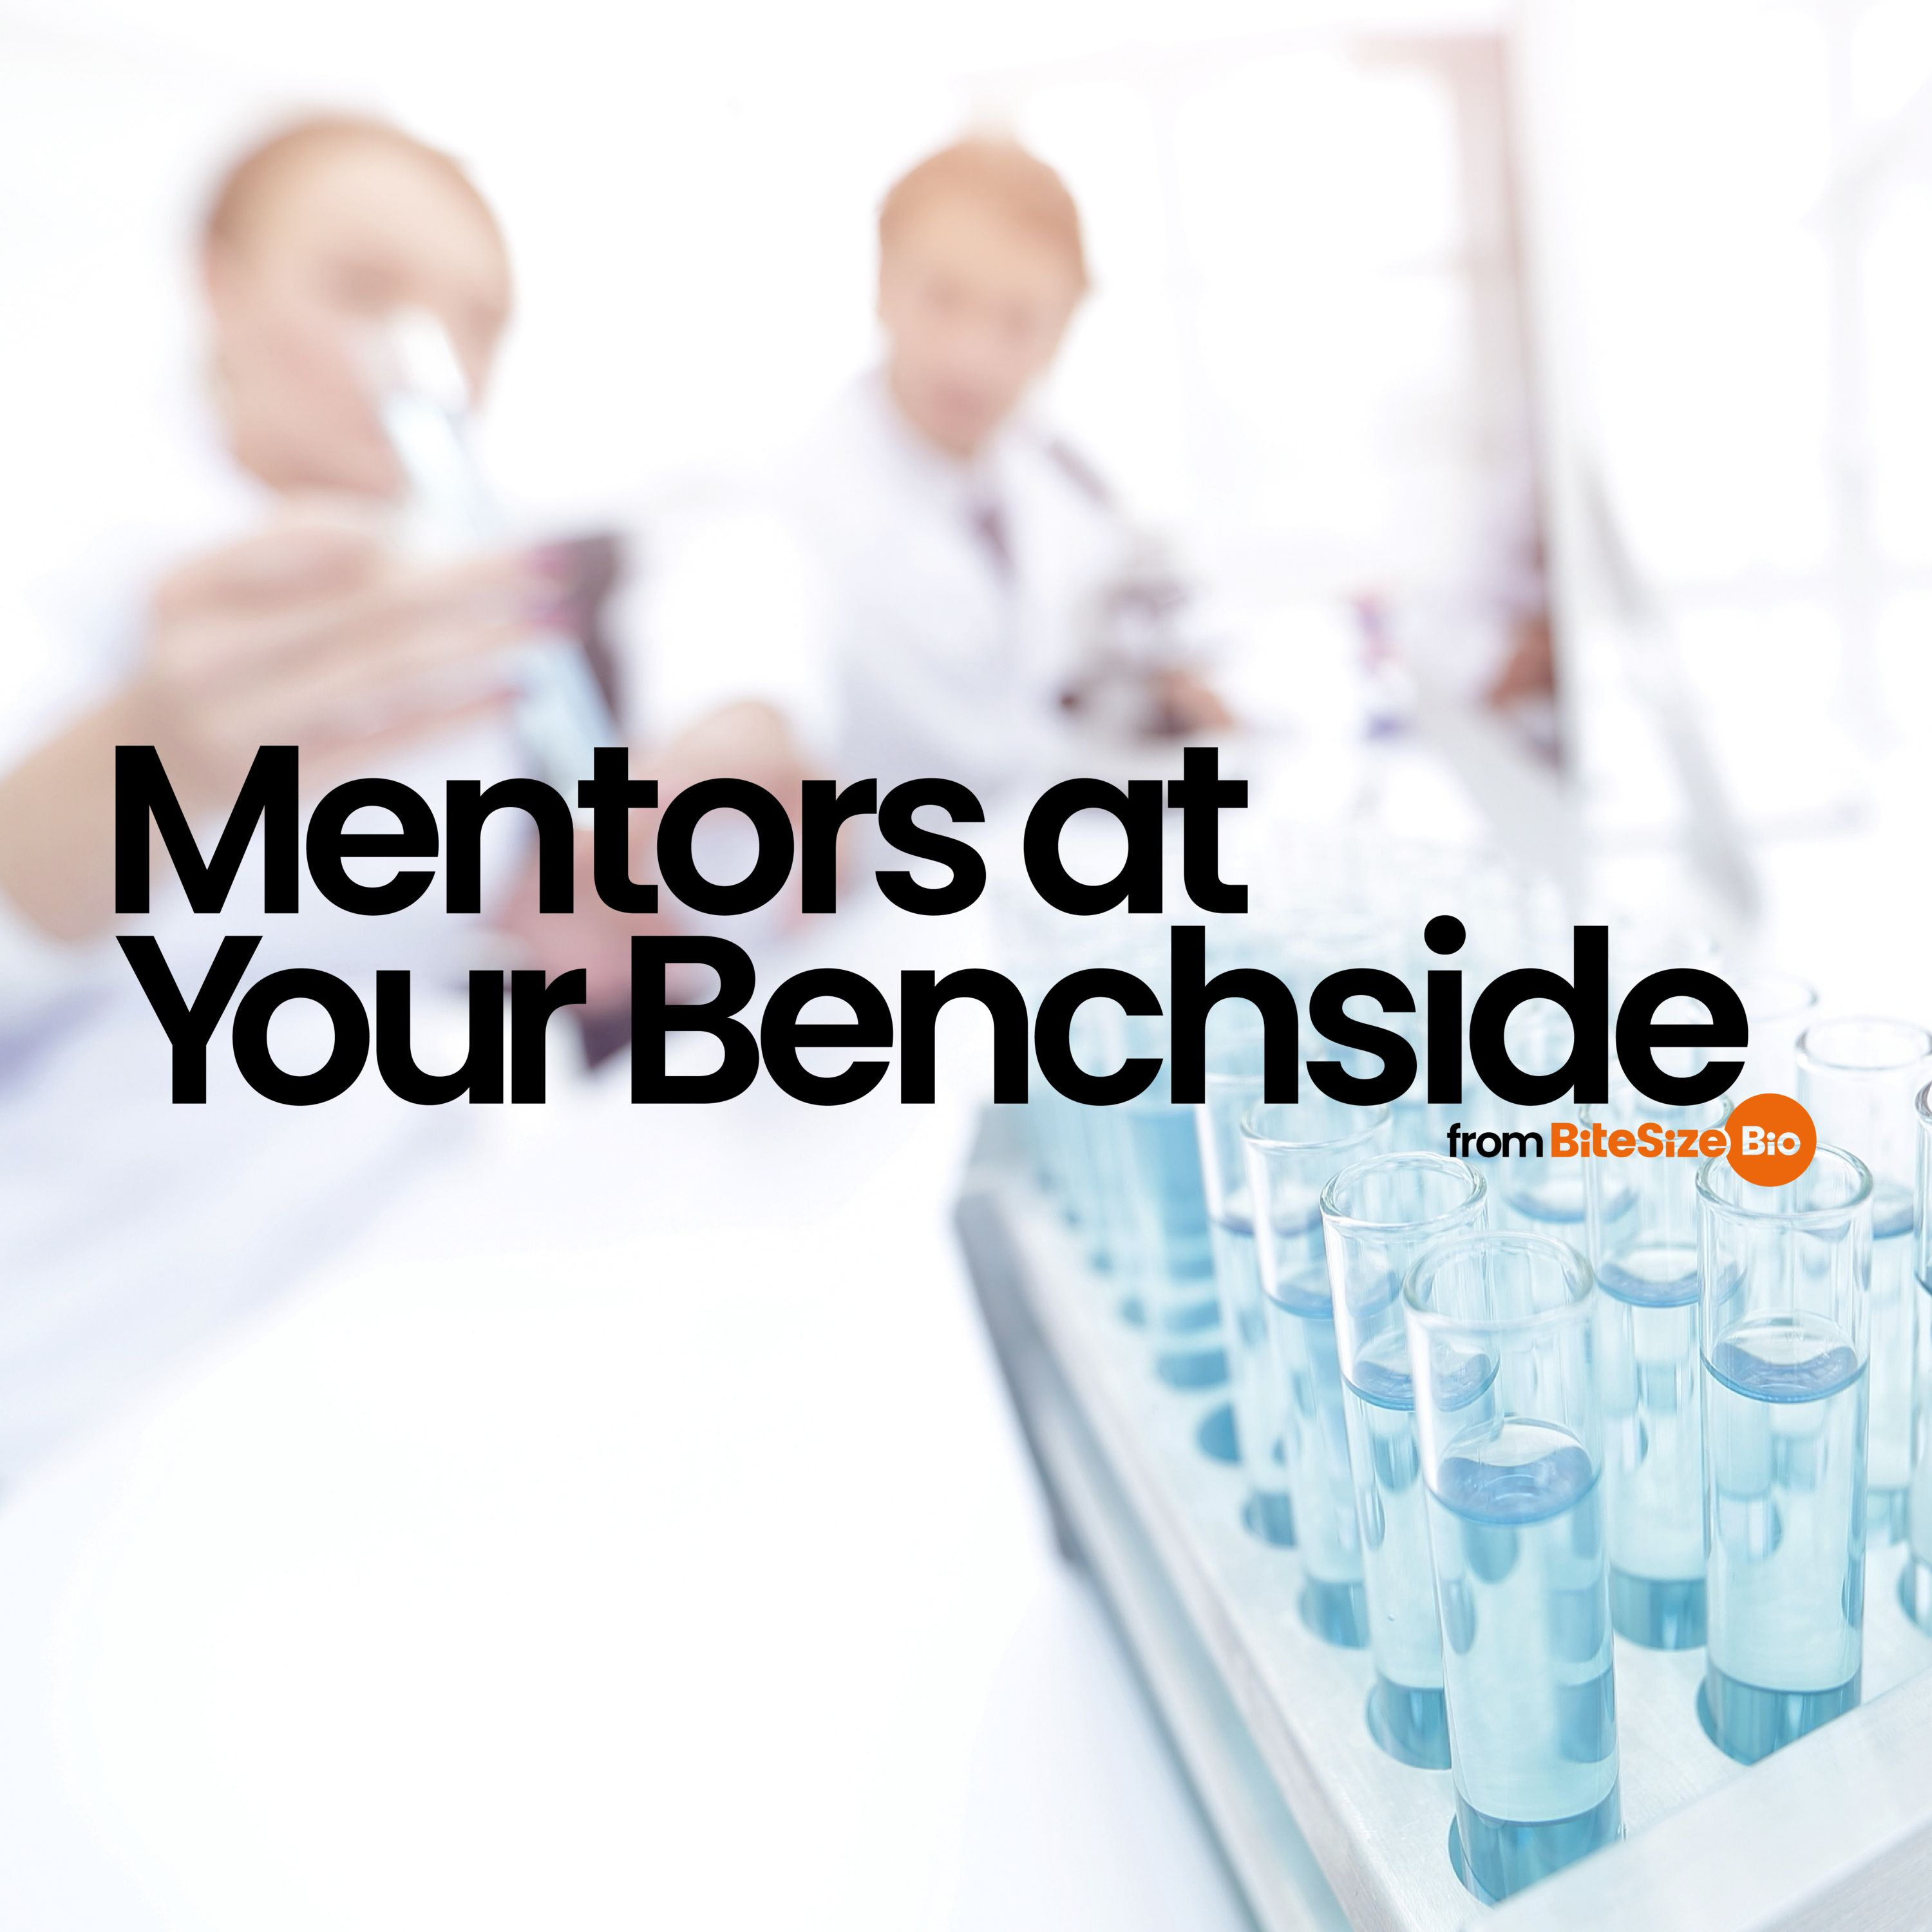 Mentors at Your Benchside